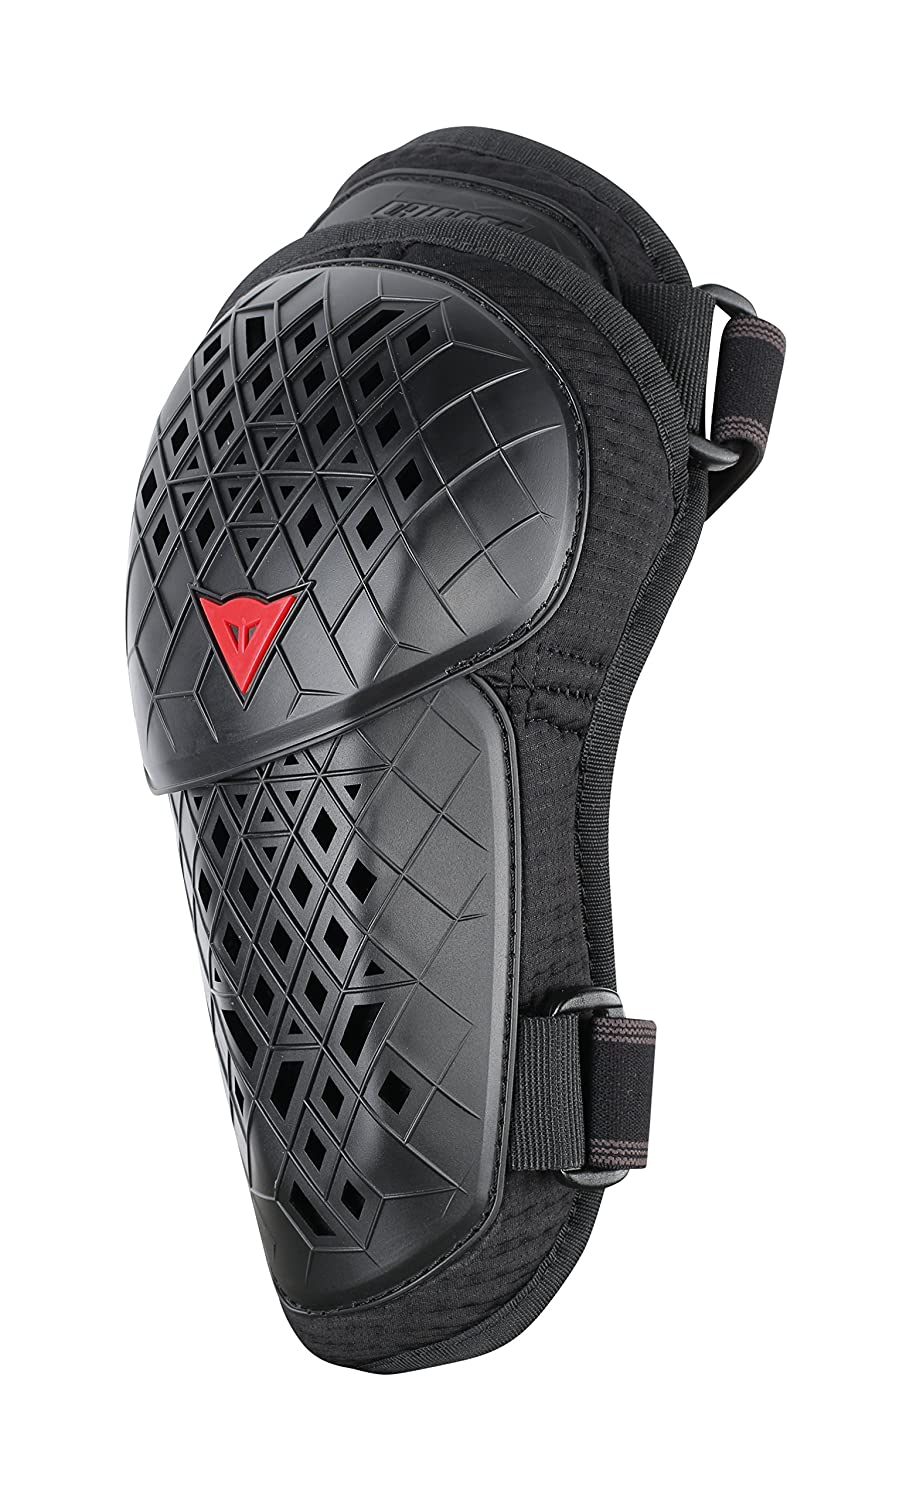 DAINESE(ダイネーゼ) ARMOFORM ELBOW GUARD LITE 001-BLACK Medium  B01MFDNC0Q